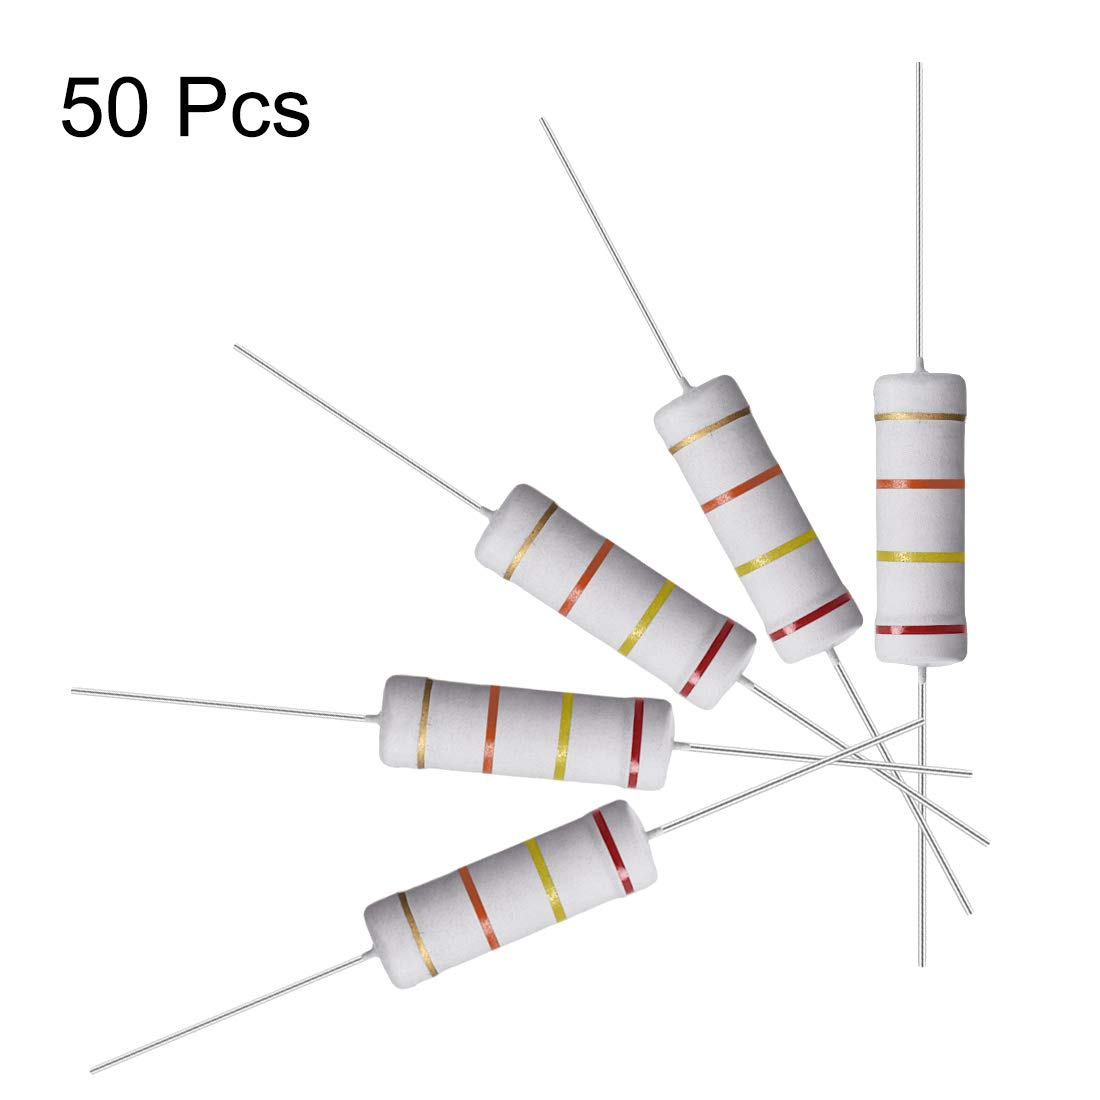 Flame Proof 2K Ohm Resistance for DIY Electronic Projects and Experiments uxcell 10 Pcs Metal Oxide Film Resistor 5W Axial Lead 5/% Tolerance